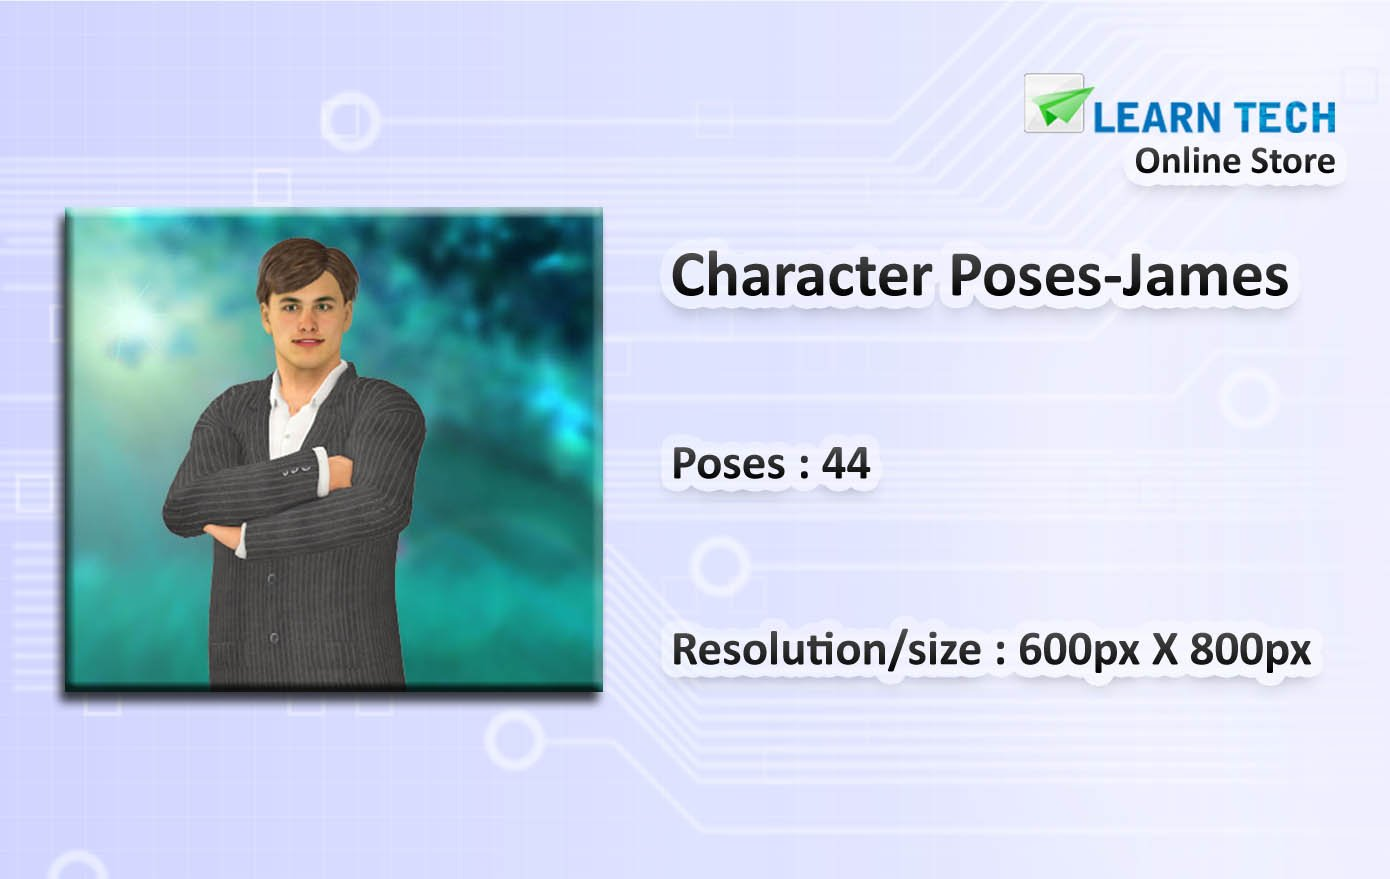 Character Poses James - Character Poses for Training decks